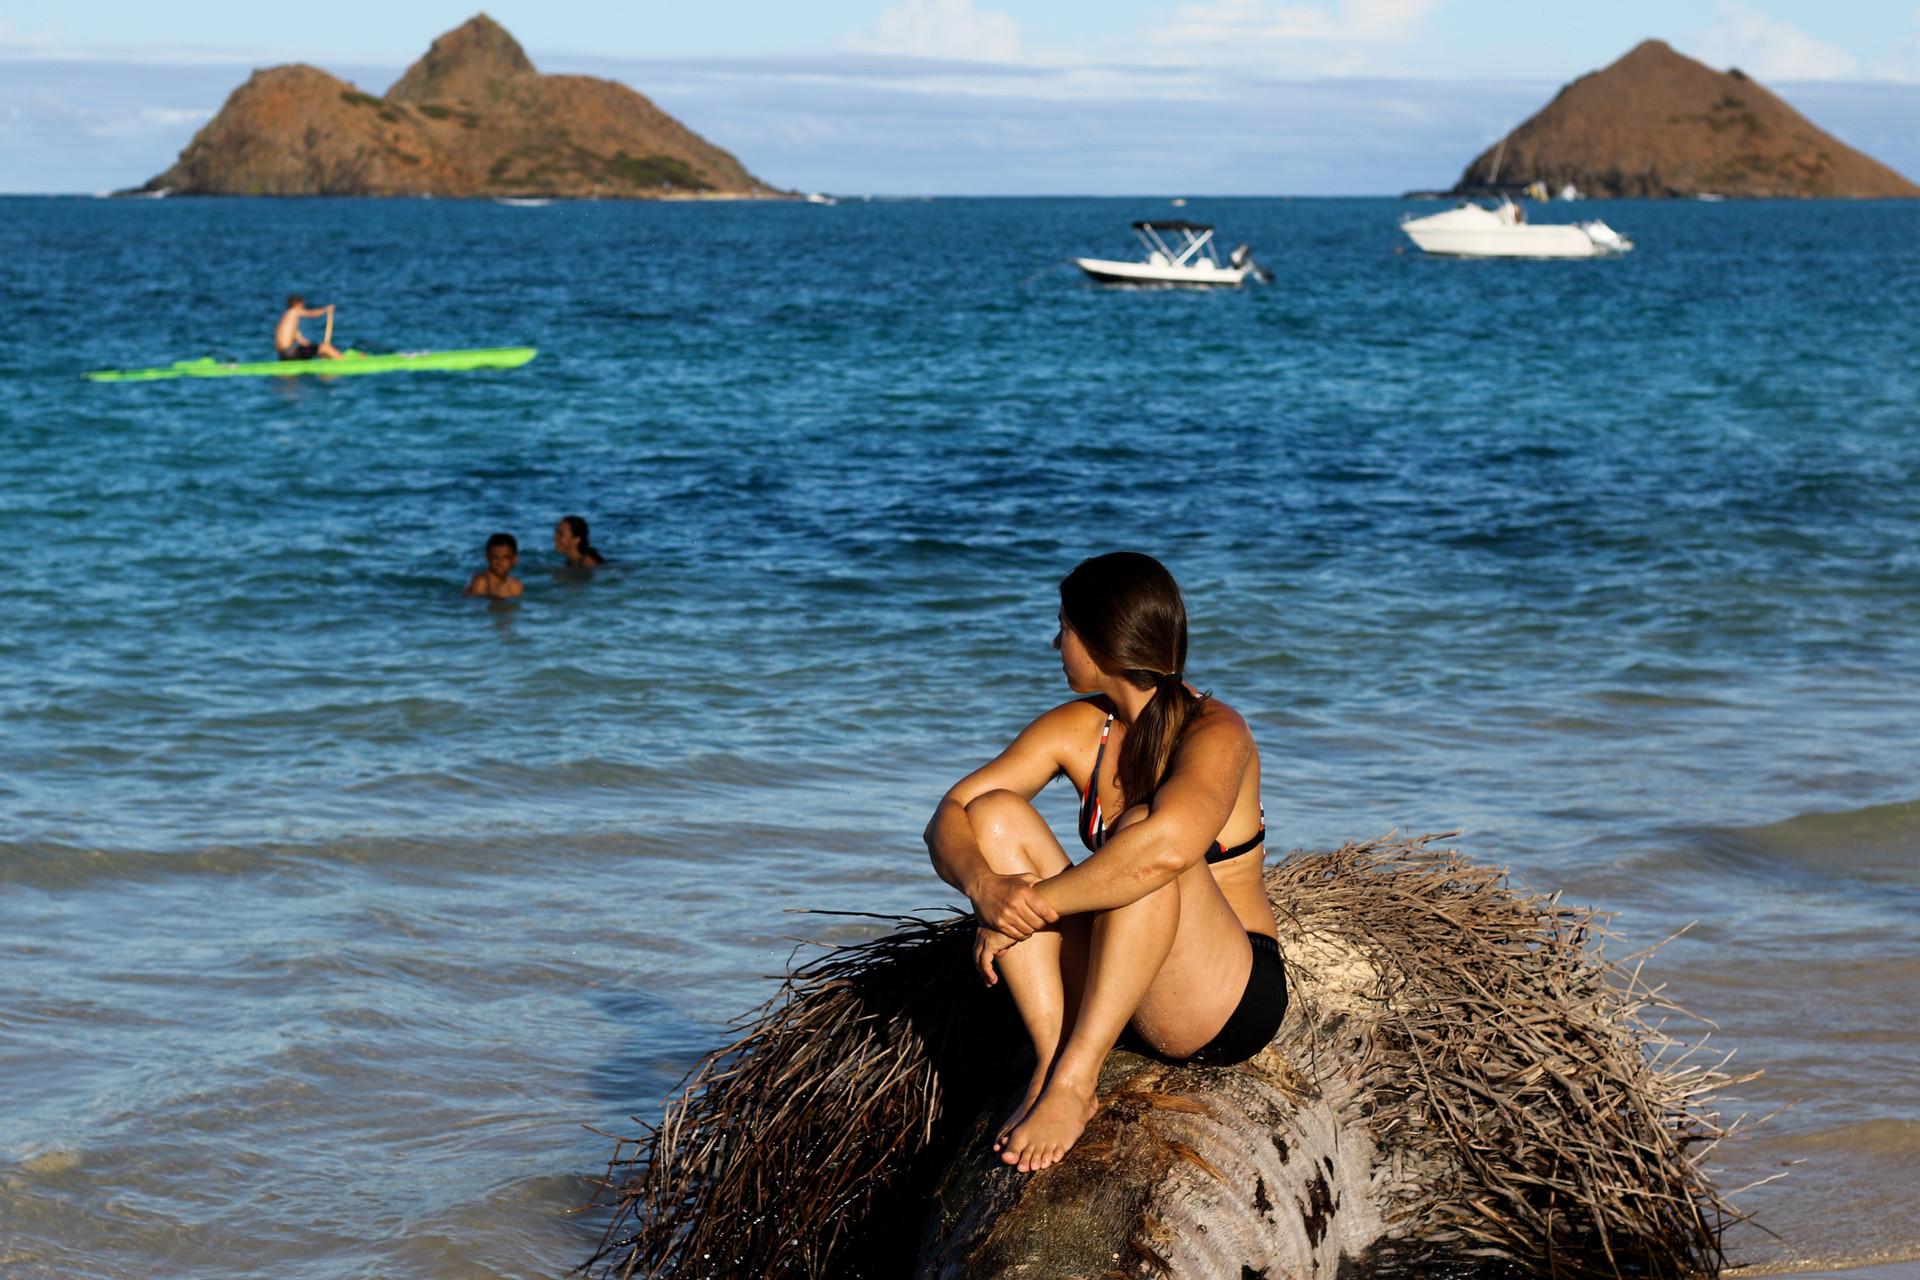 Rower Lia Ditton sits looks out to the ocean sitting in a stagnant coconut tree timber on October 1, 2020 in Lanikai Beach, Kailua, HI.